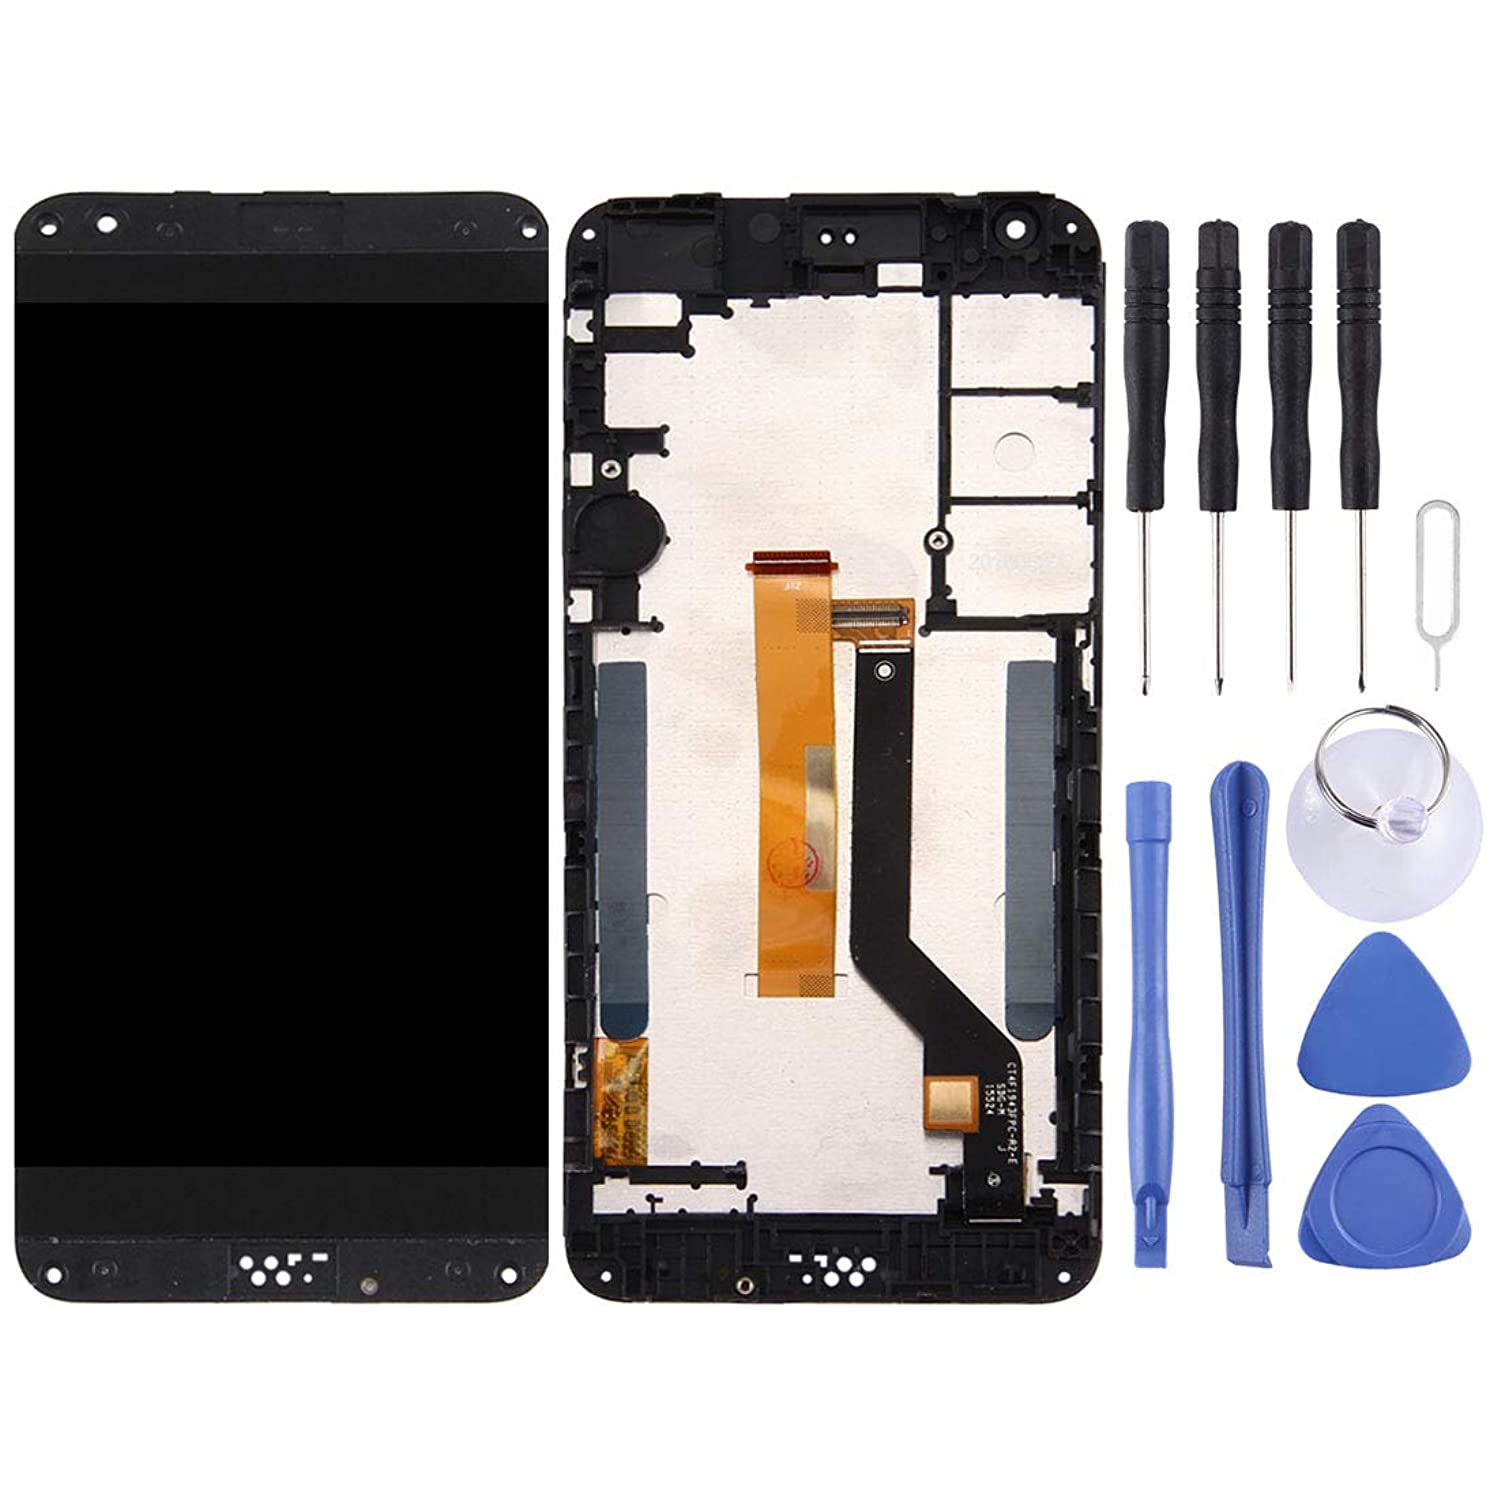 Huamentallice LCD Screen Repaire&Spare Parts LCD Screen and Digitizer Full Assembly with Frame & Top + Lower Bottom Glass Lens Cover for HTC Desire 530 (Grey) (Color : Grey)